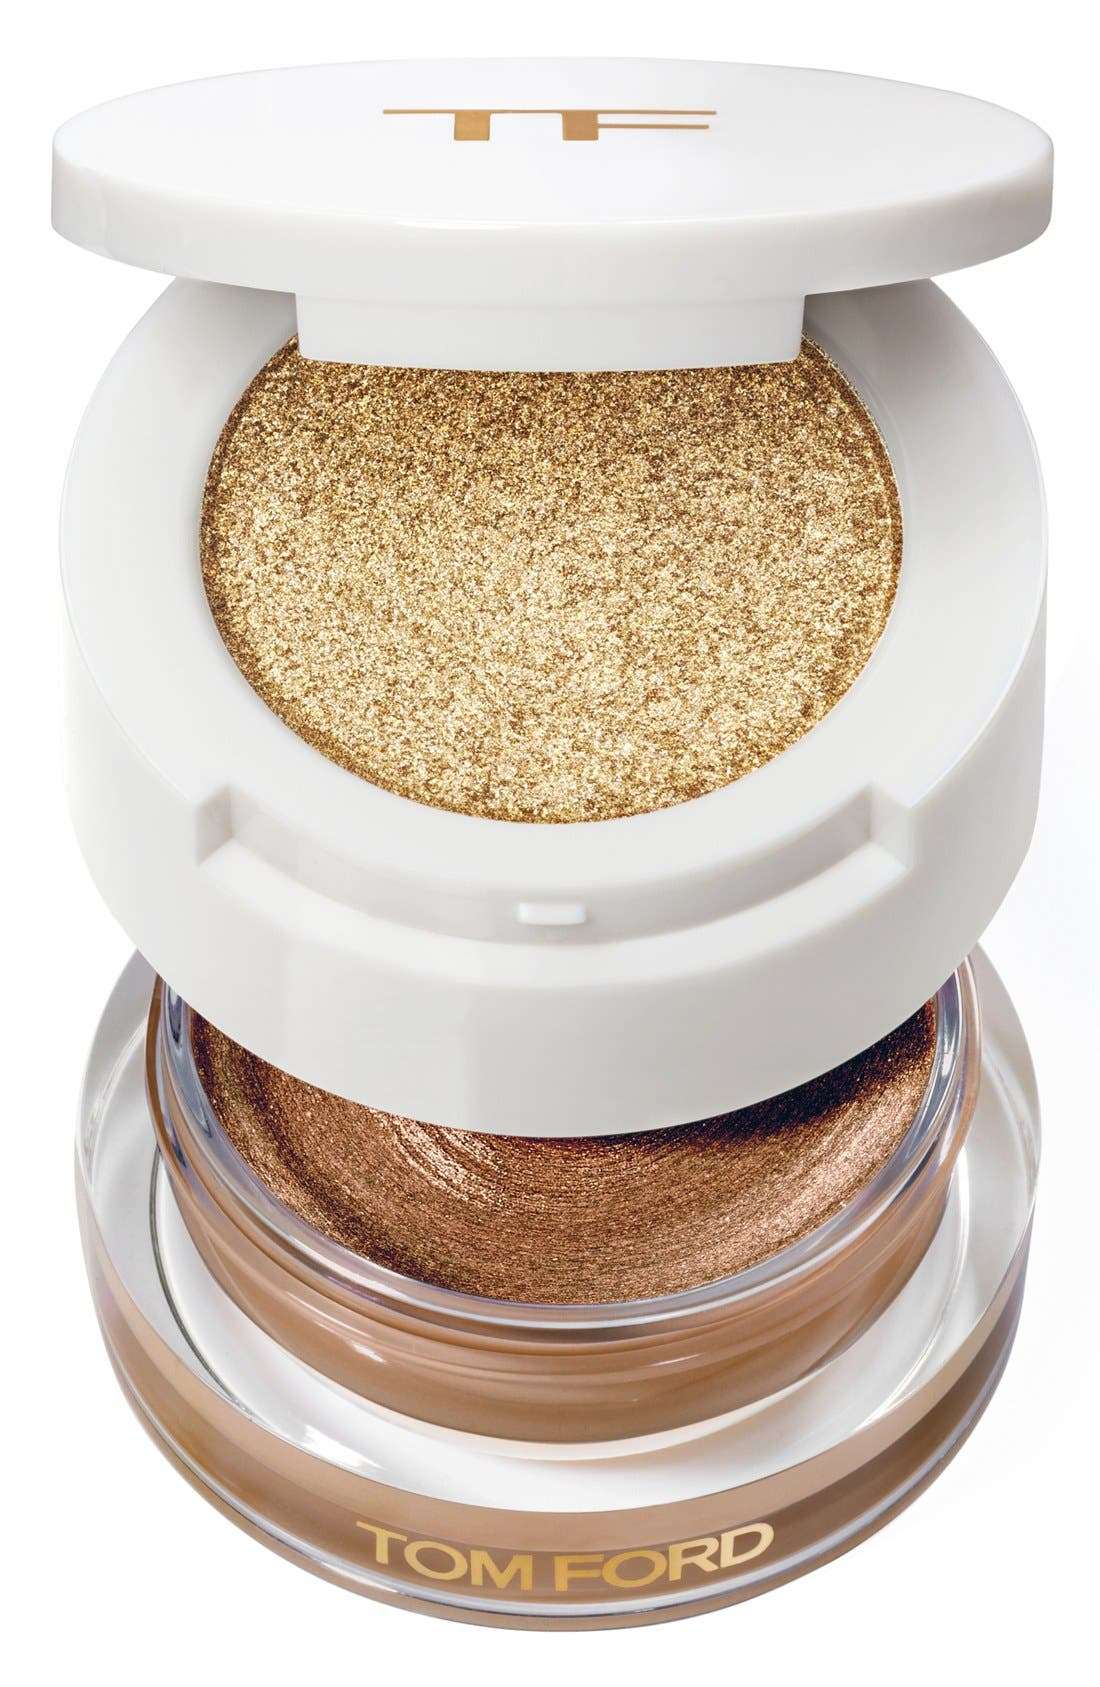 TOM FORD Cream & Powder Eye Color Duo, Main, color, NAKED BRONZE